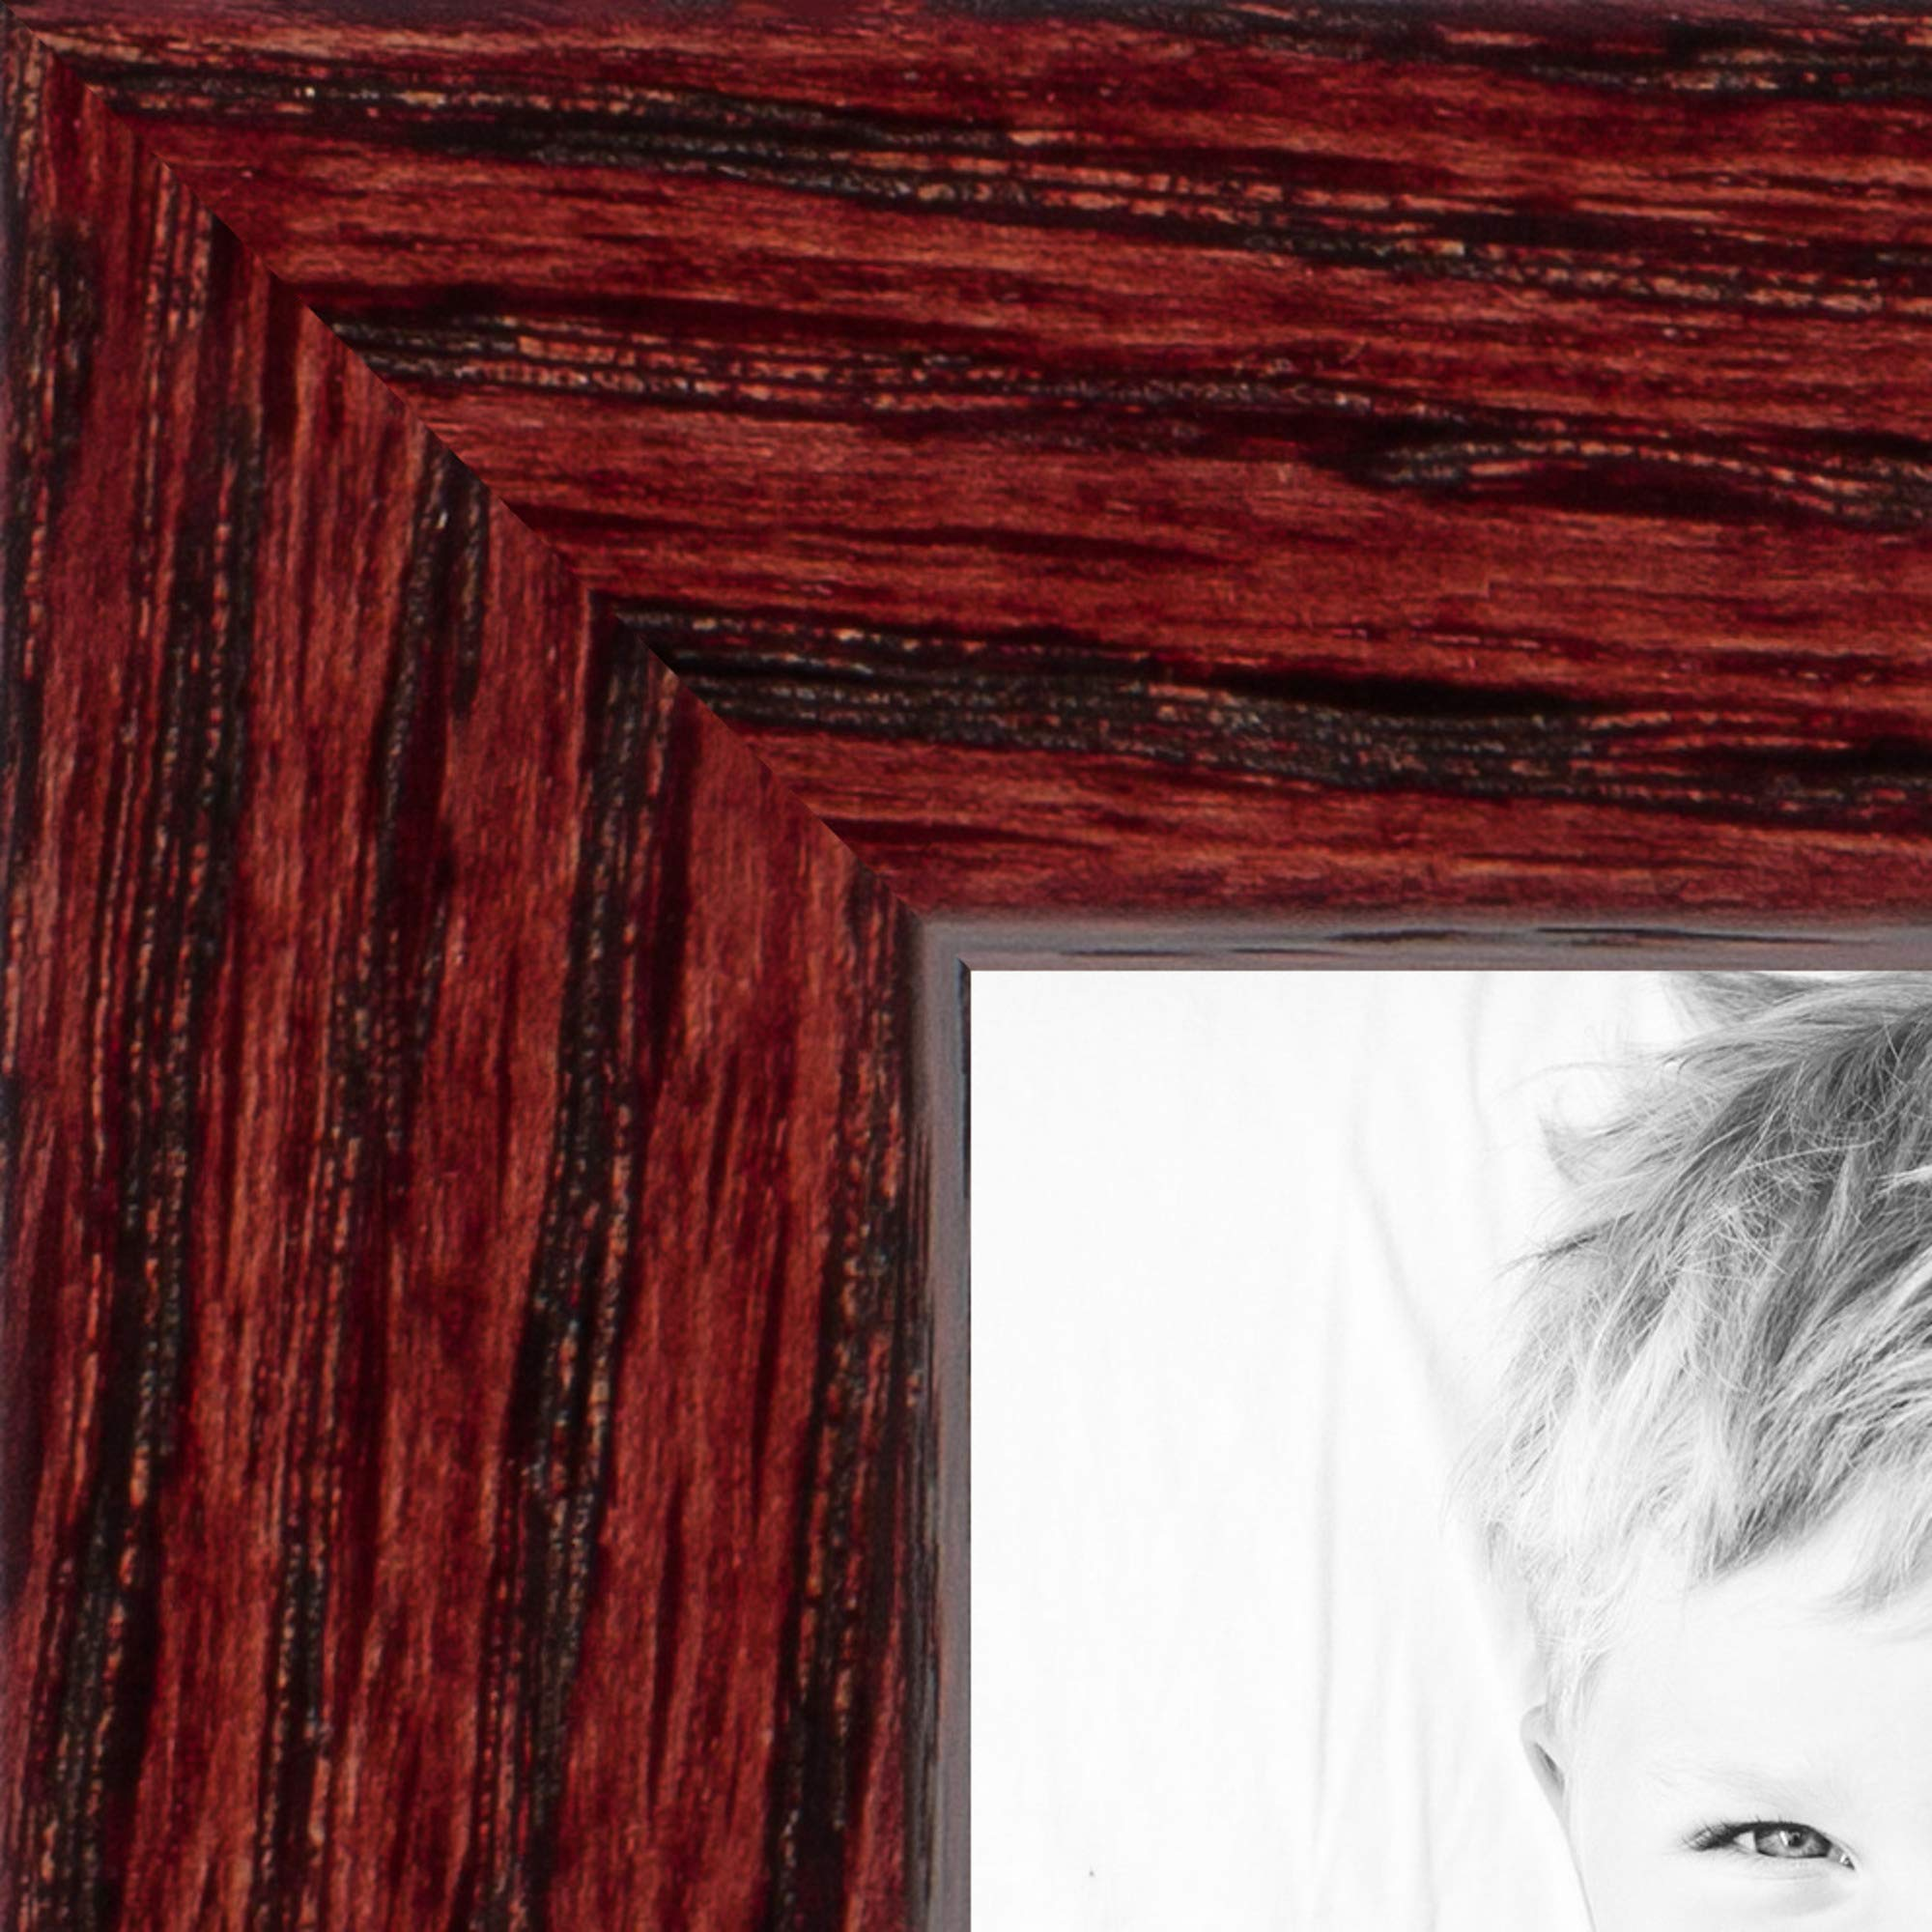 ArtToFrames 12x20 inch Cherry on Red Oak Wood Picture Frame, 2WOM0066-1343-YCHY-12x20